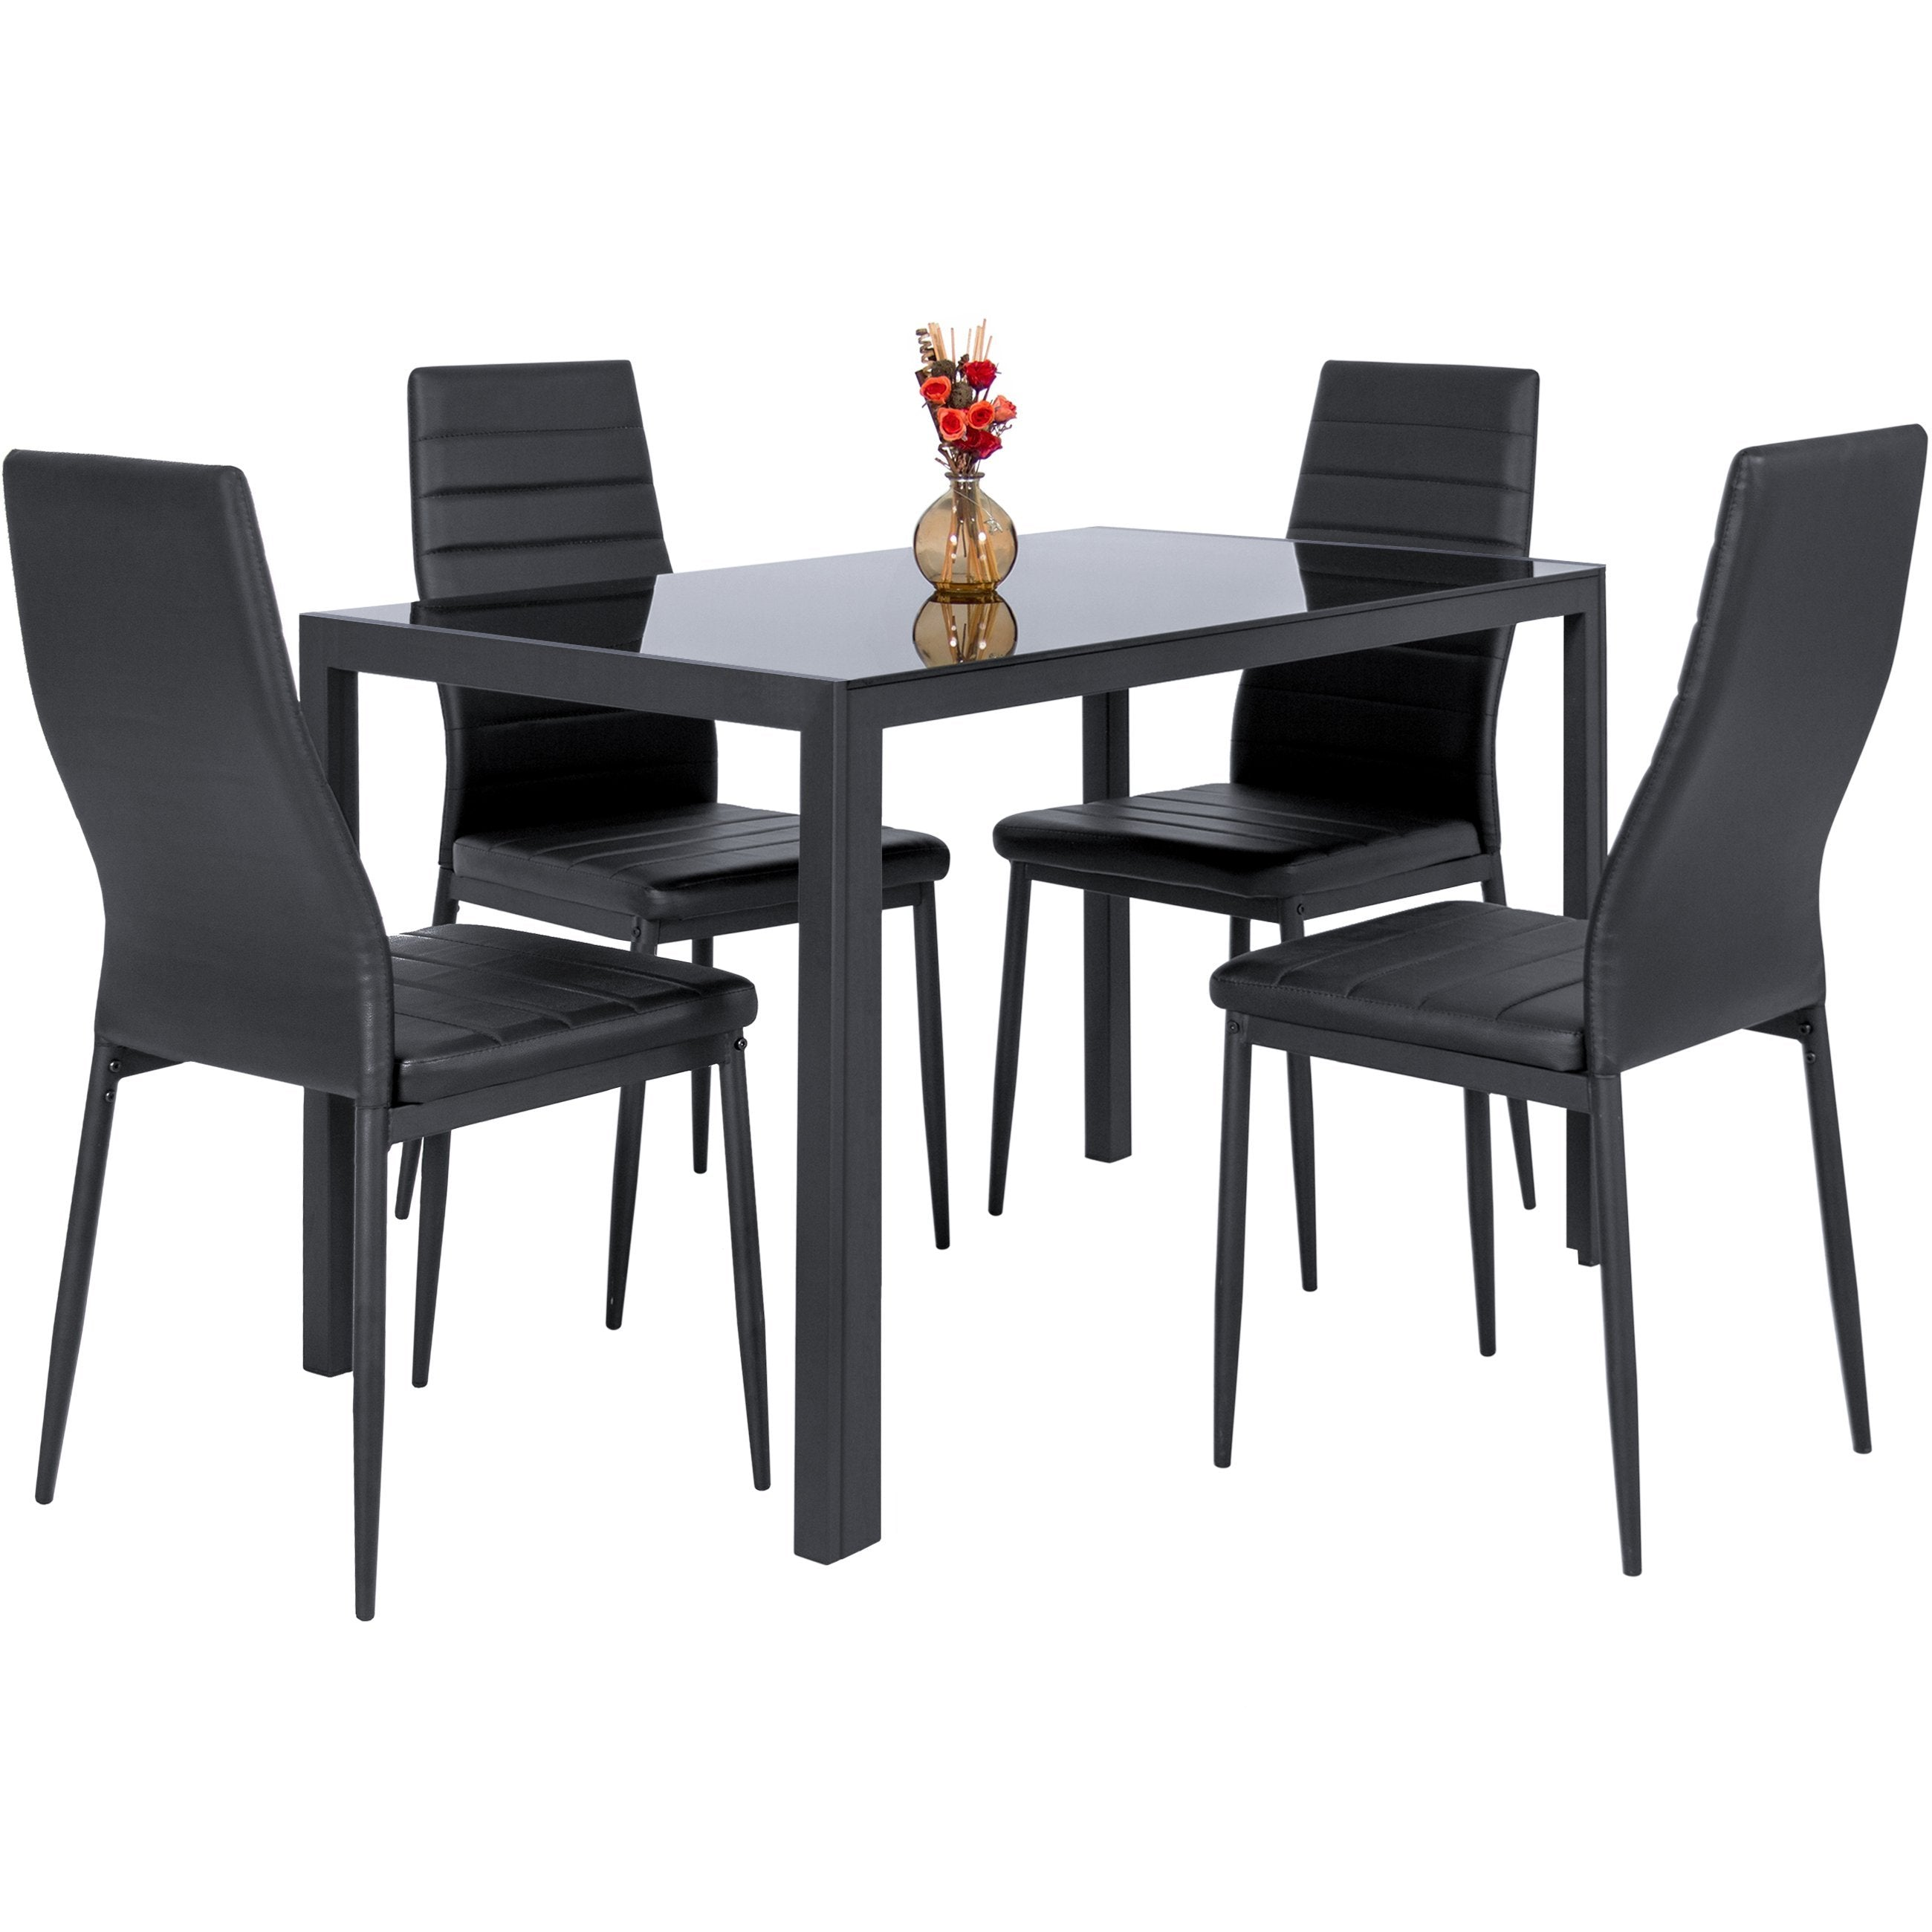 5-Piece Dining Table Set w/ Glass Top, Leather Chairs - Black